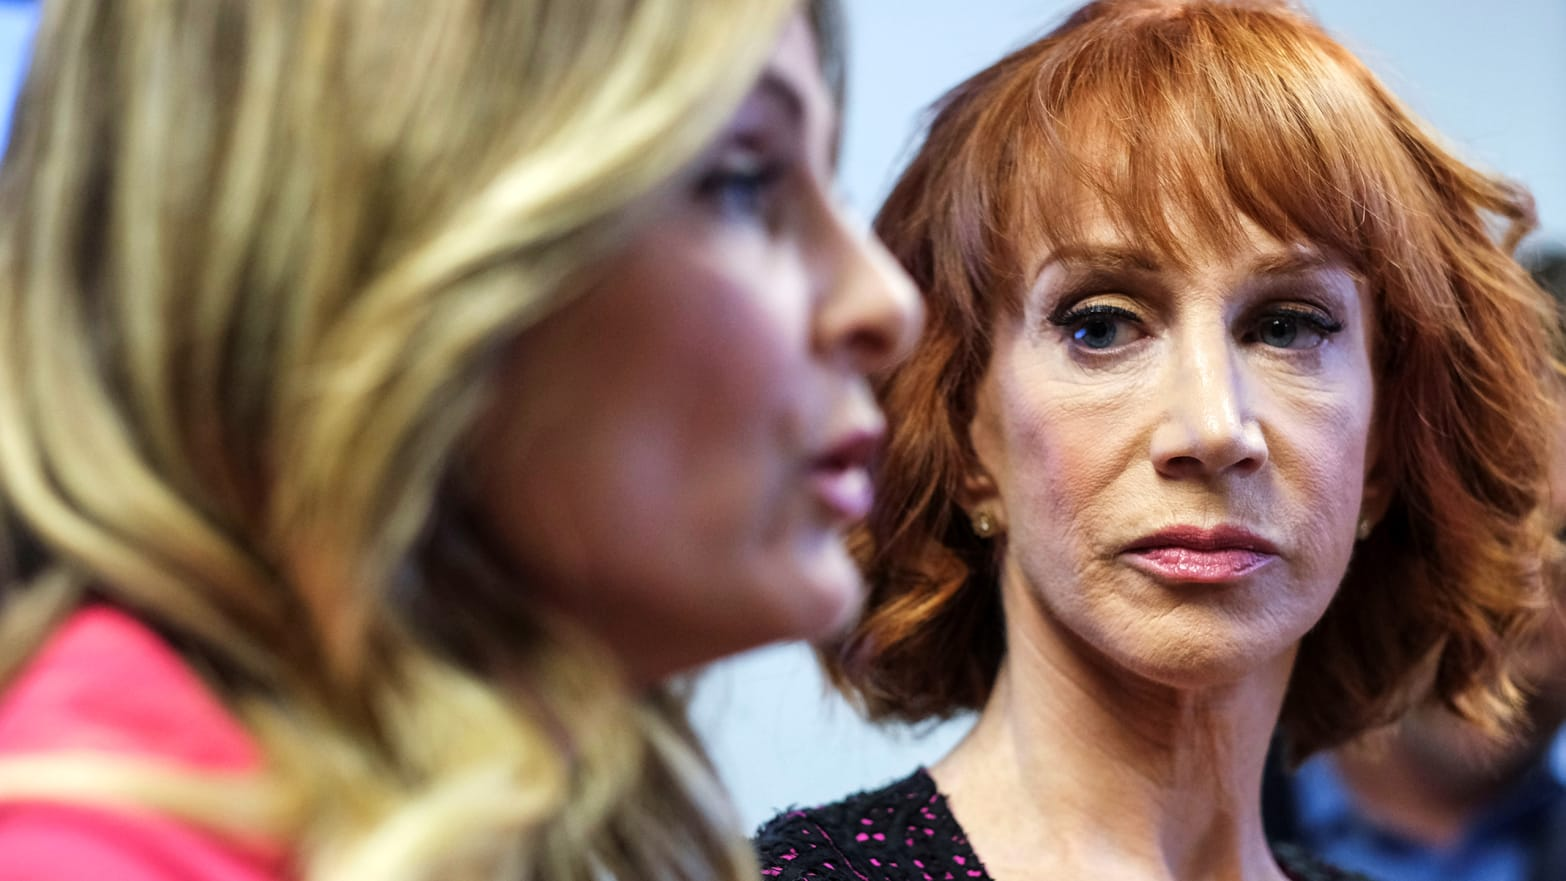 'I Got Bloomed': Kathy Griffin Dishes On Her Feud With 'Fame Whore' Lawyer Lisa Bloom—and Bloom Returns Fire